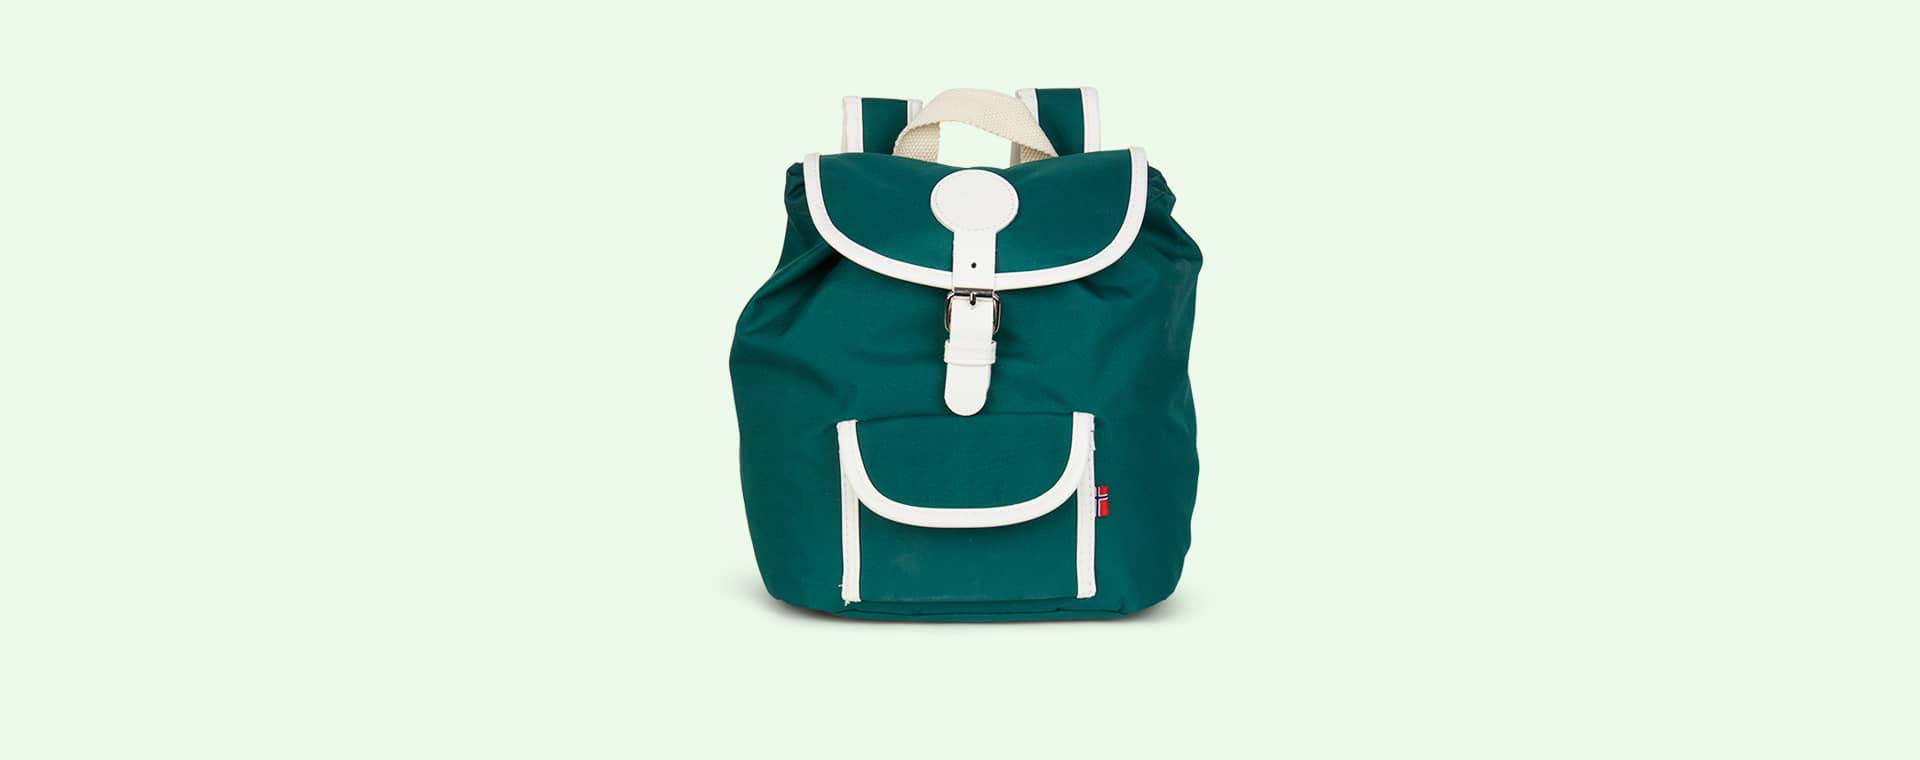 Green Blafre Kids Backpack 6L